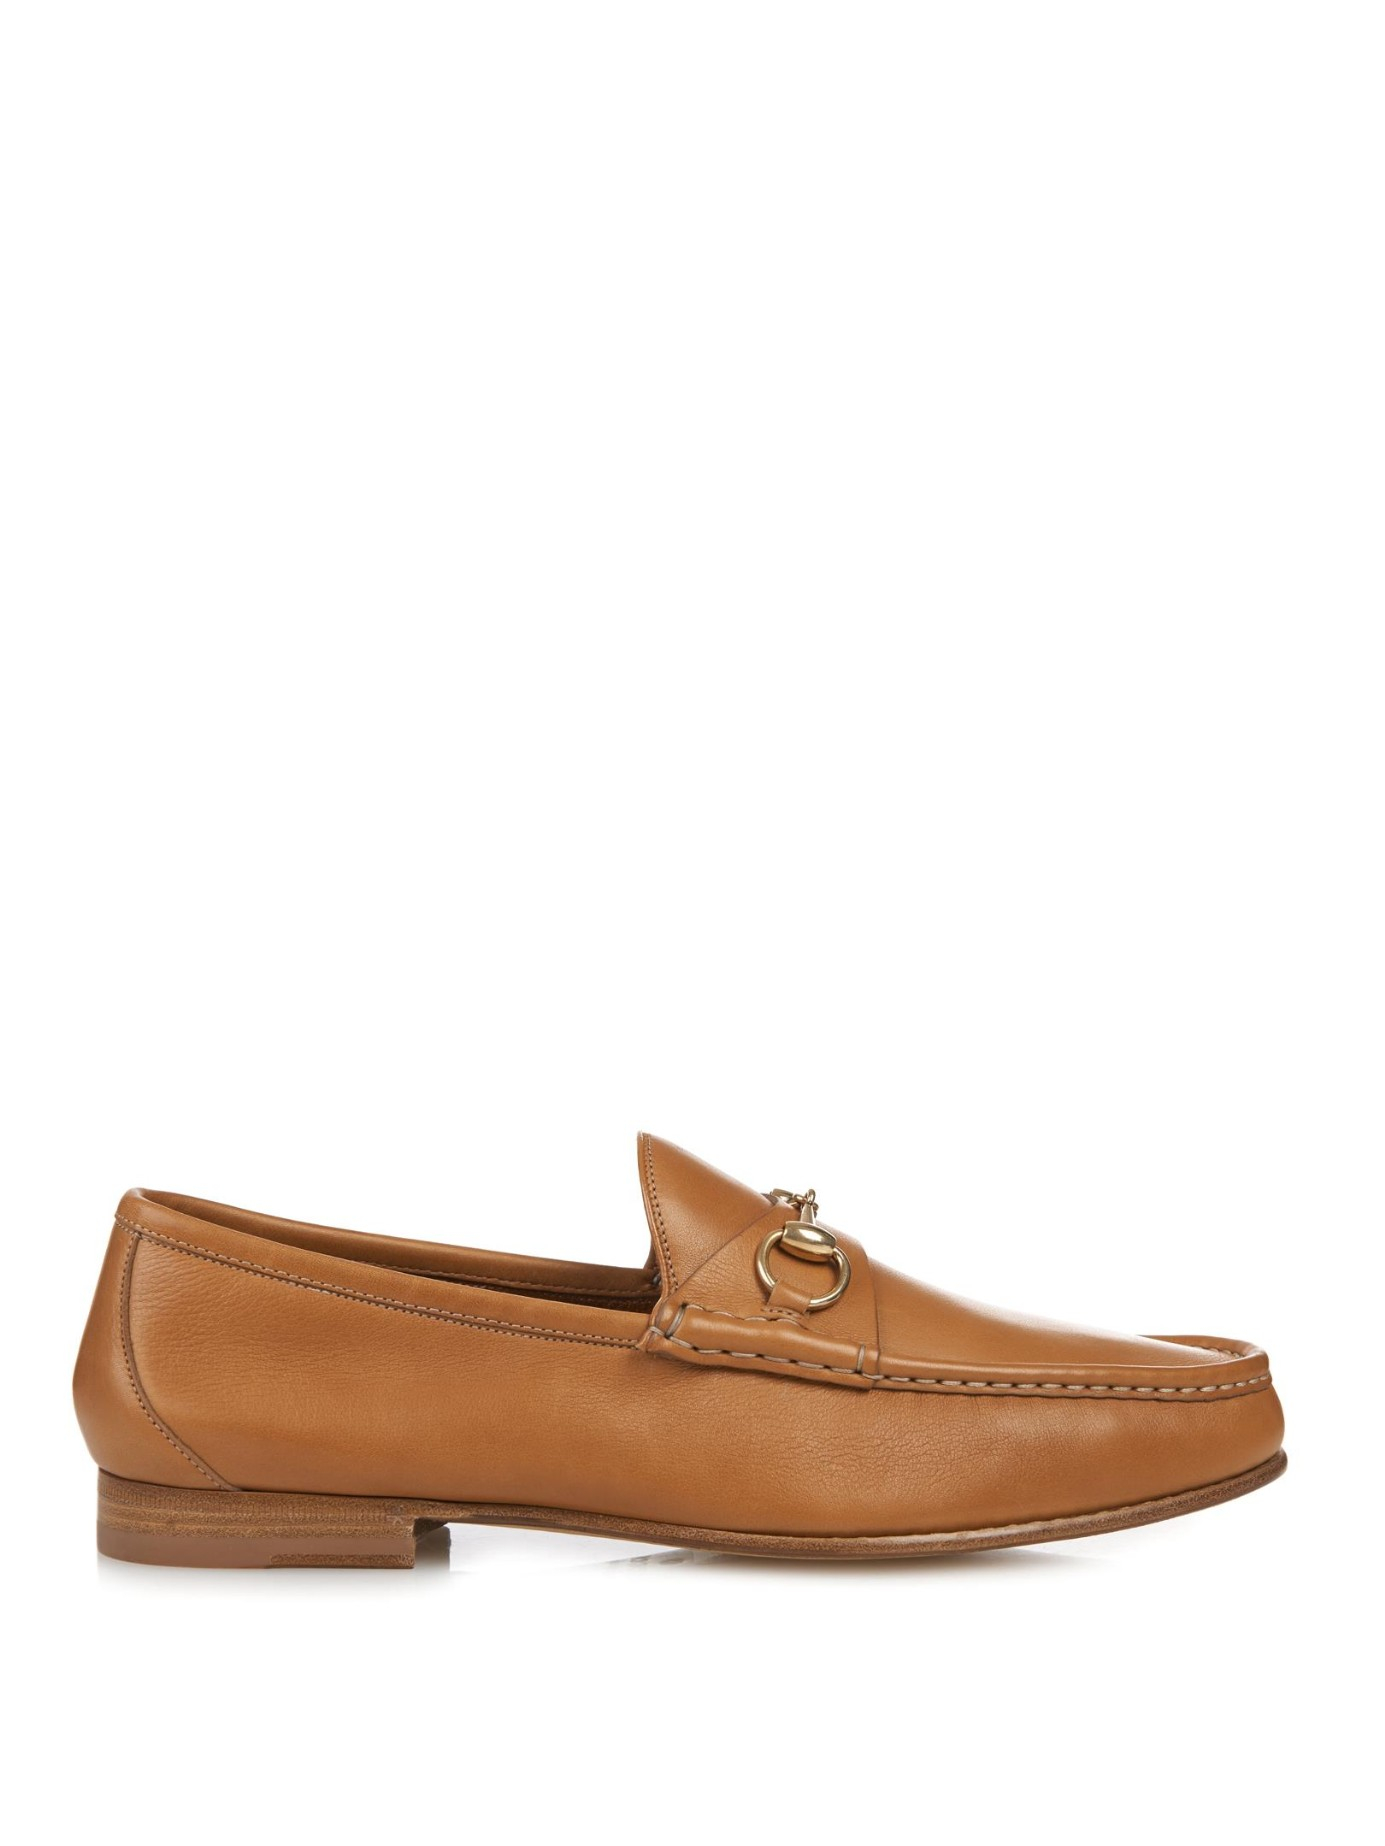 2bc0a2f9816 Lyst - Gucci Biscotto Leather Loafers in Brown for Men